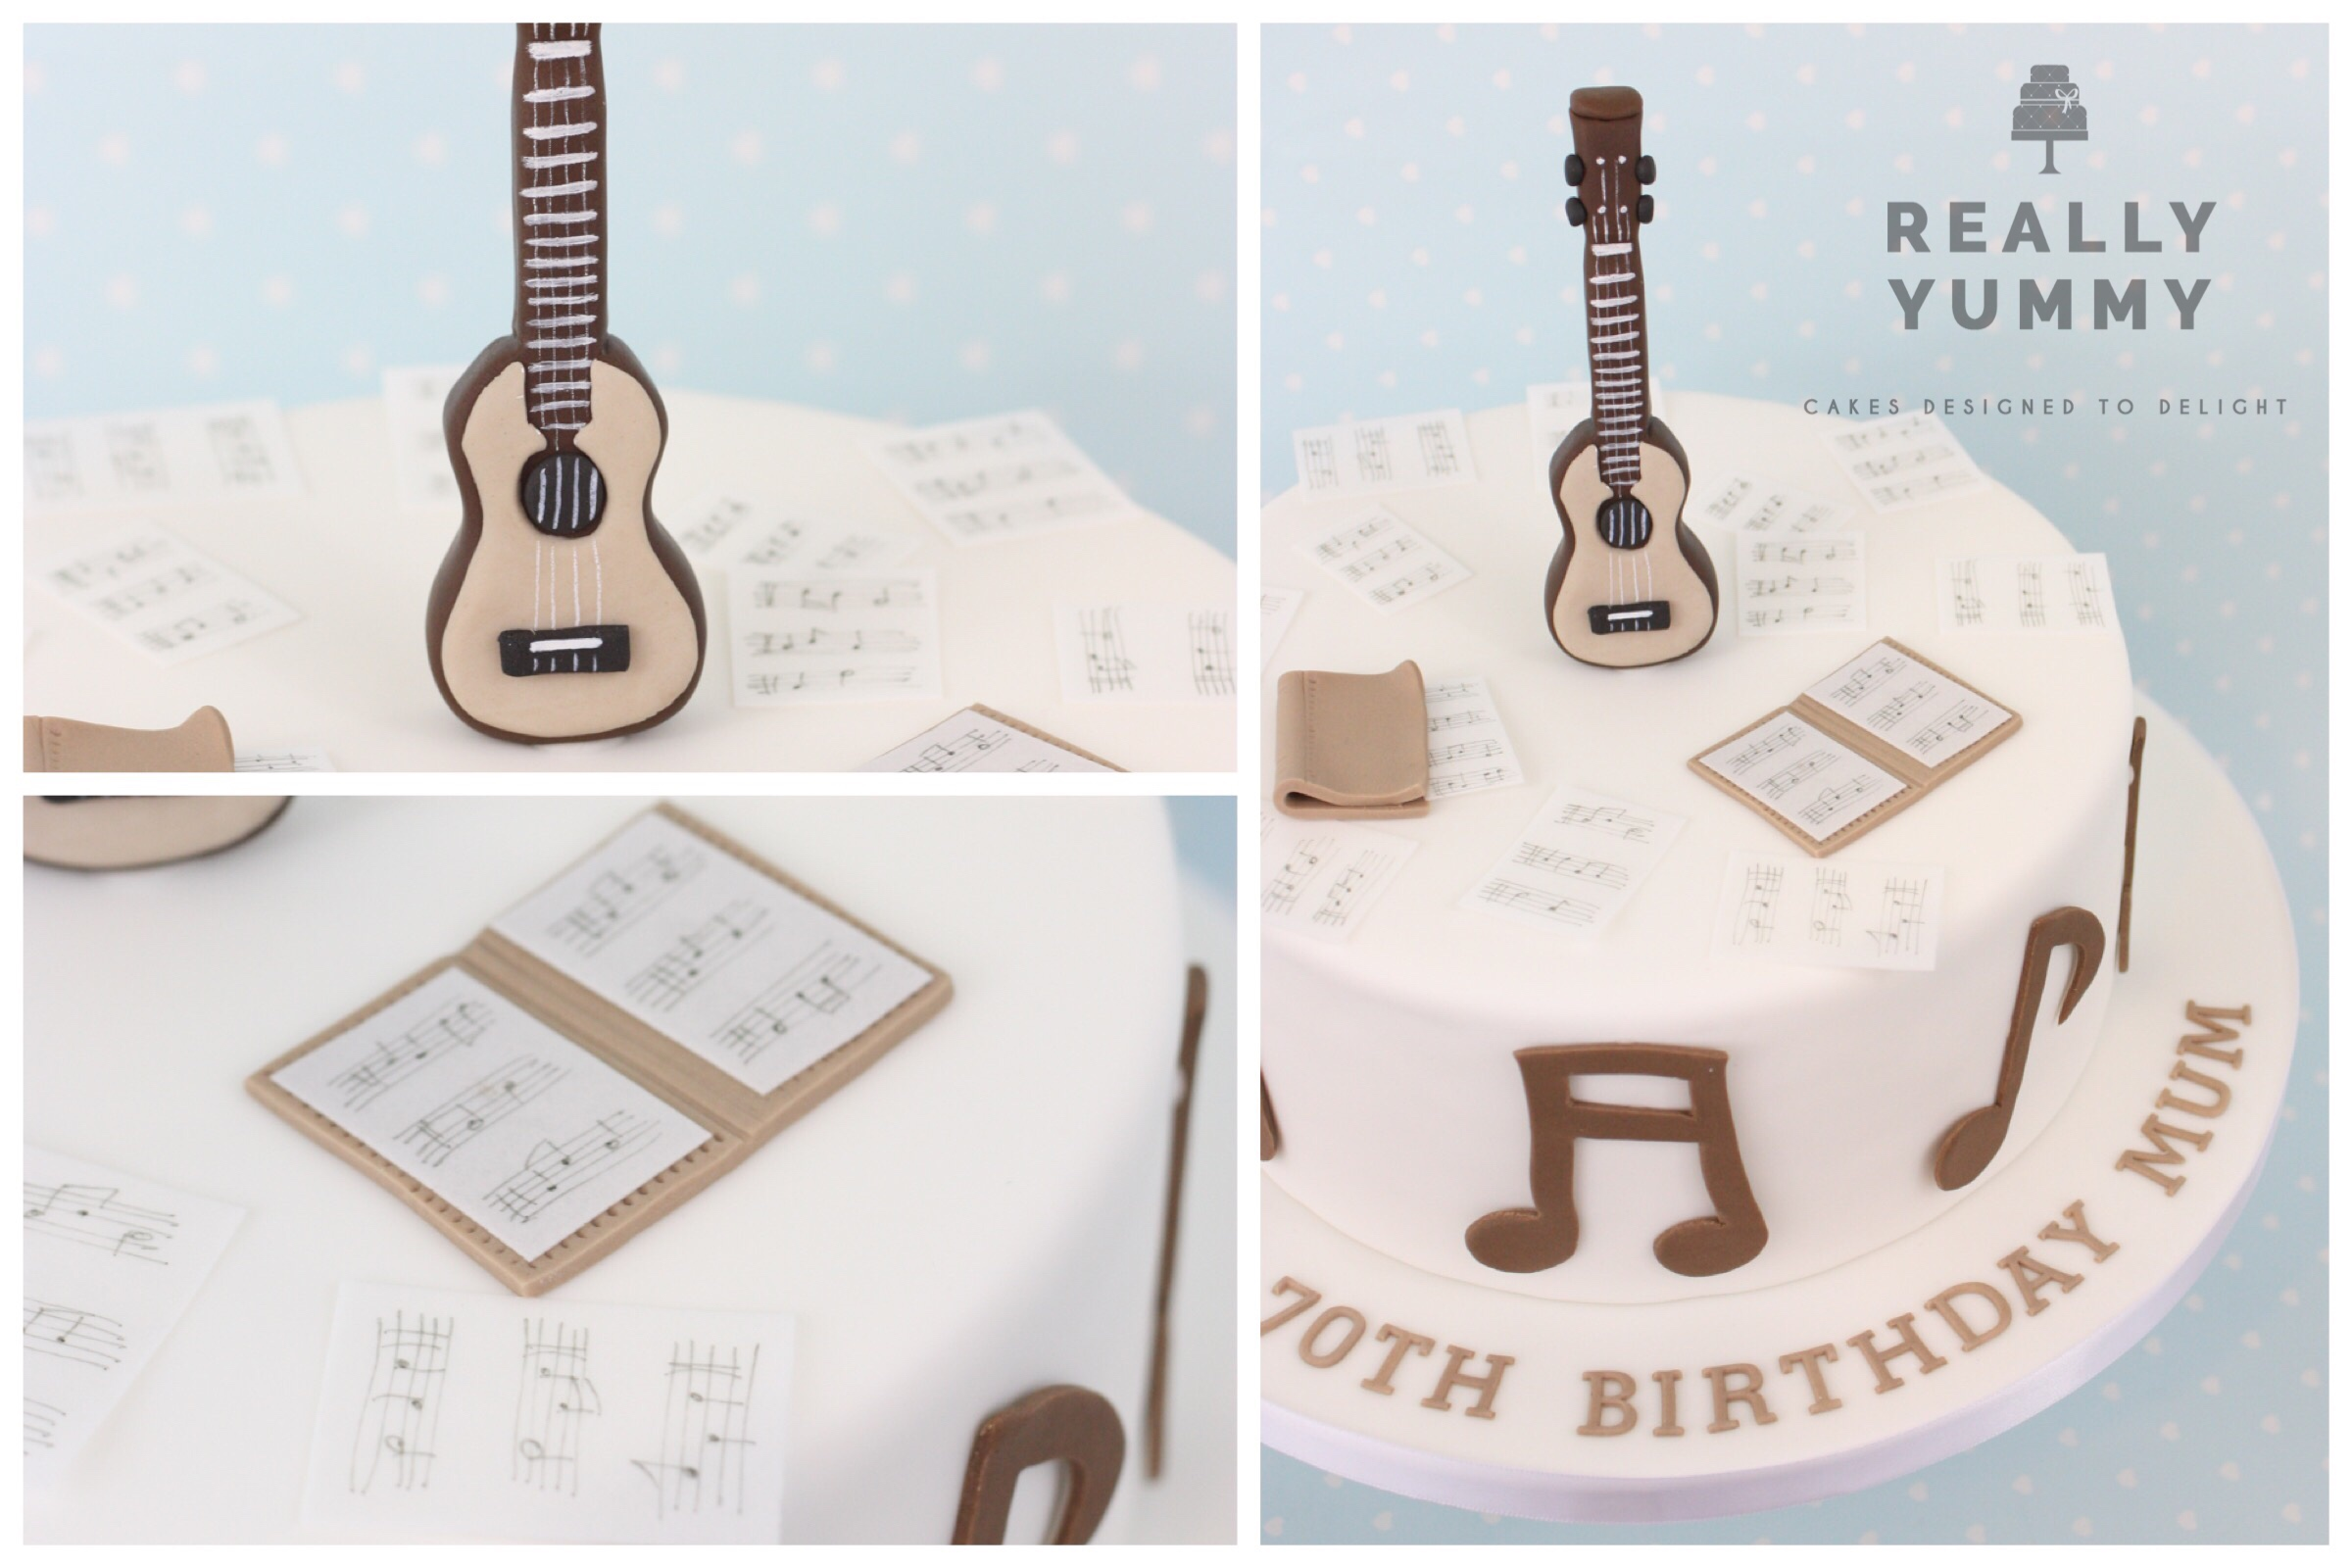 Debbie P. - Many thanks Liz for another fantastic cake! I love it that I can just tell you the occasion and the recipient's hobbies and then collect the perfect cake. The music theme was a big hit and my Mum absolutely loved the ukulele – so clever!